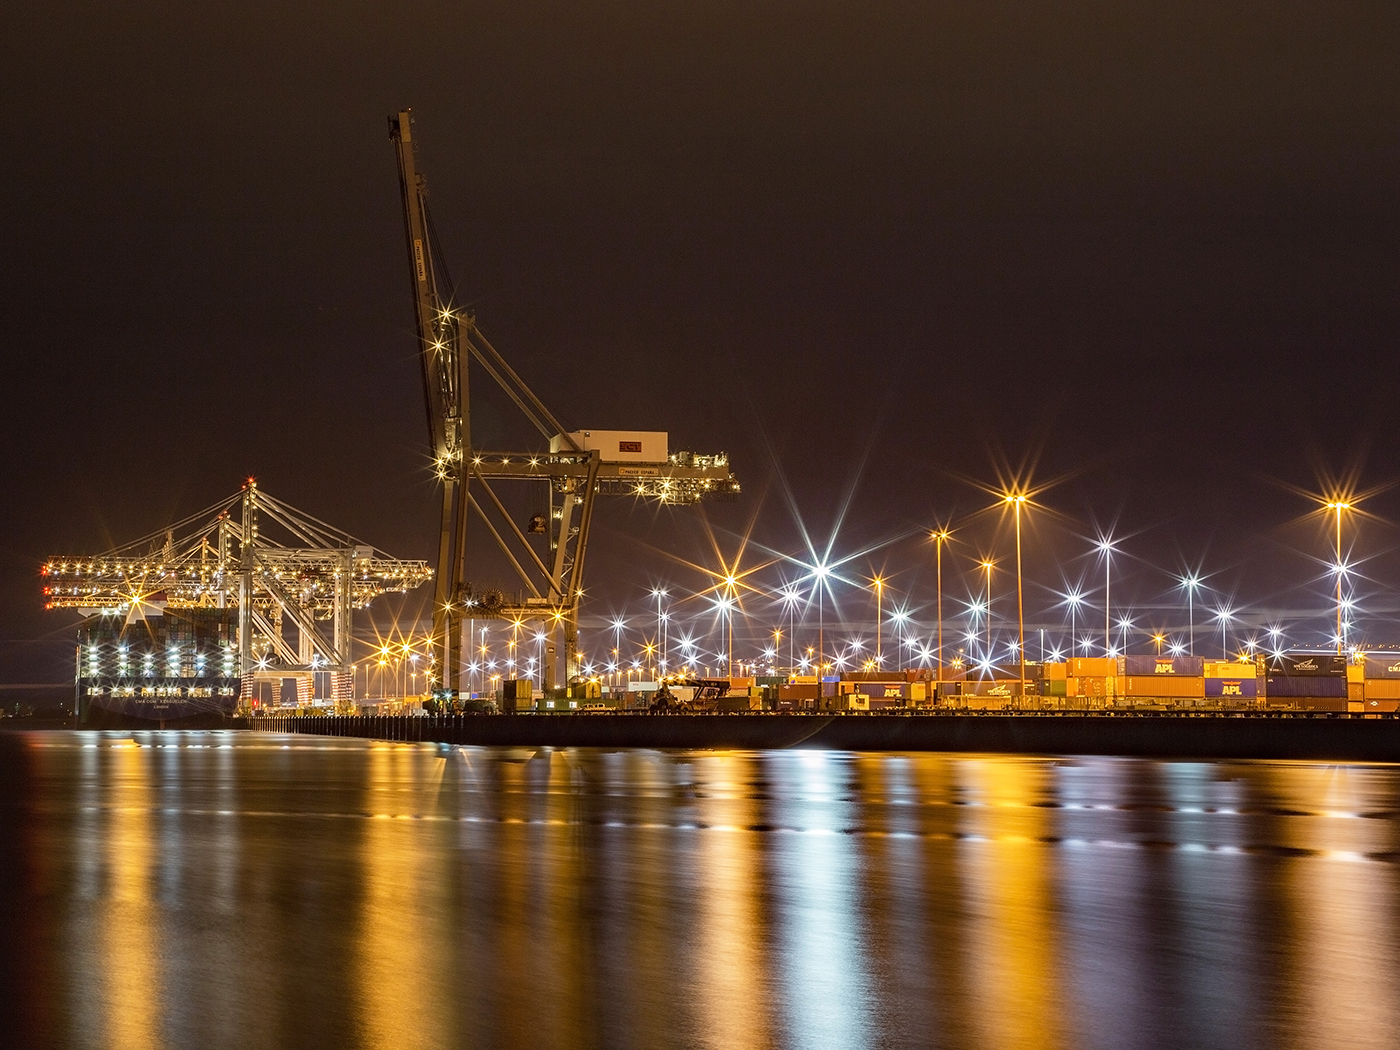 'The docks at night' by Sarah Shelley LRPS CPAGB